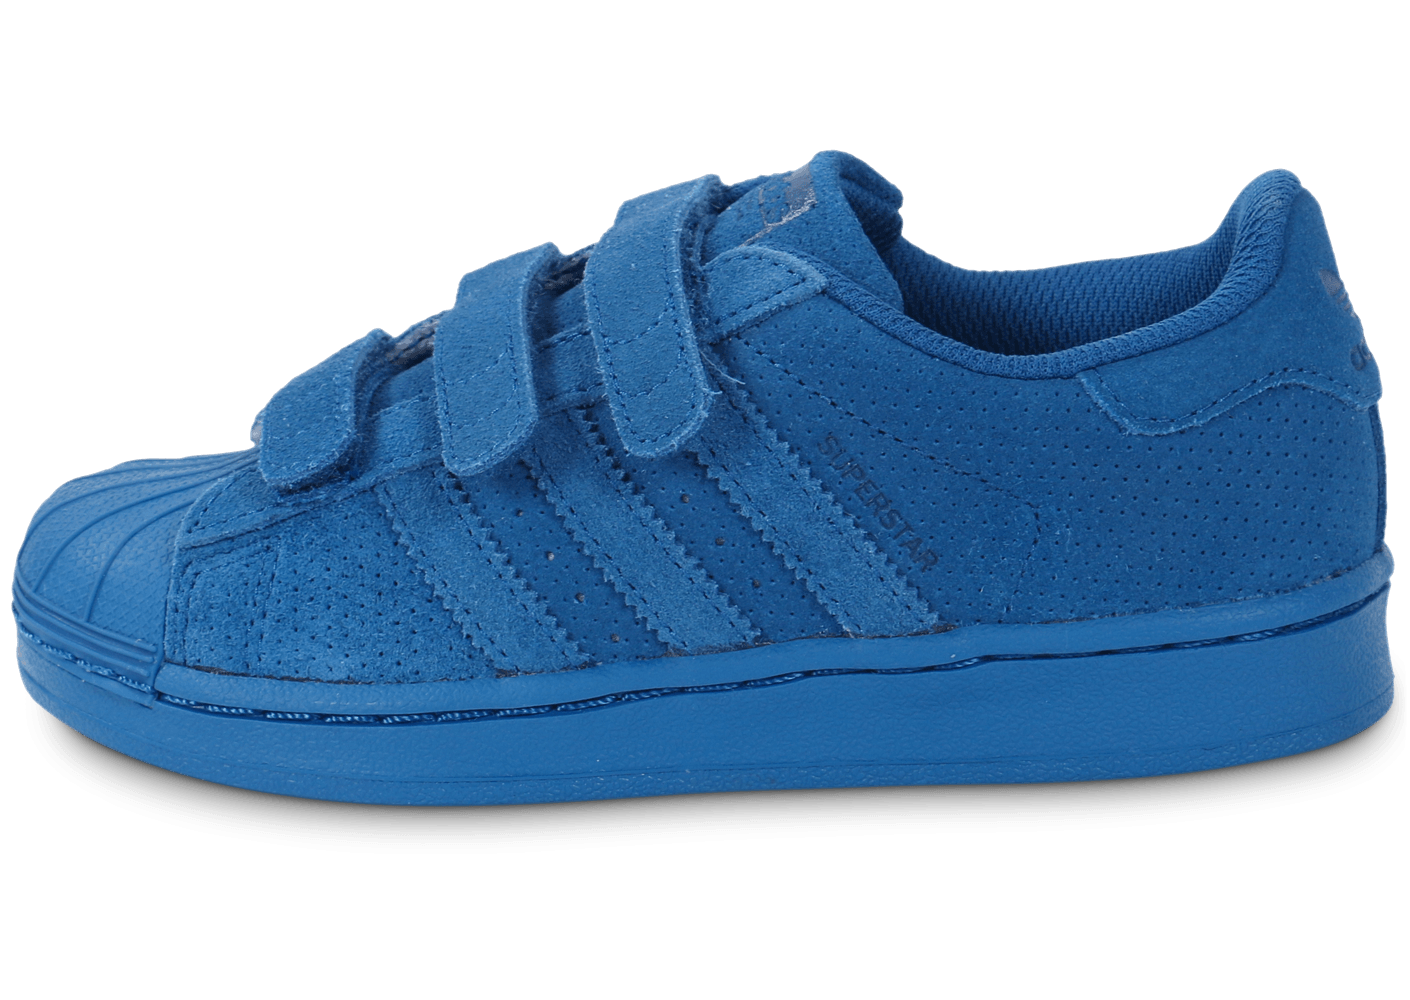 9640ca03a25a4 adidas Superstar Multicolor Enfant bleue - Chaussures adidas - Chausport